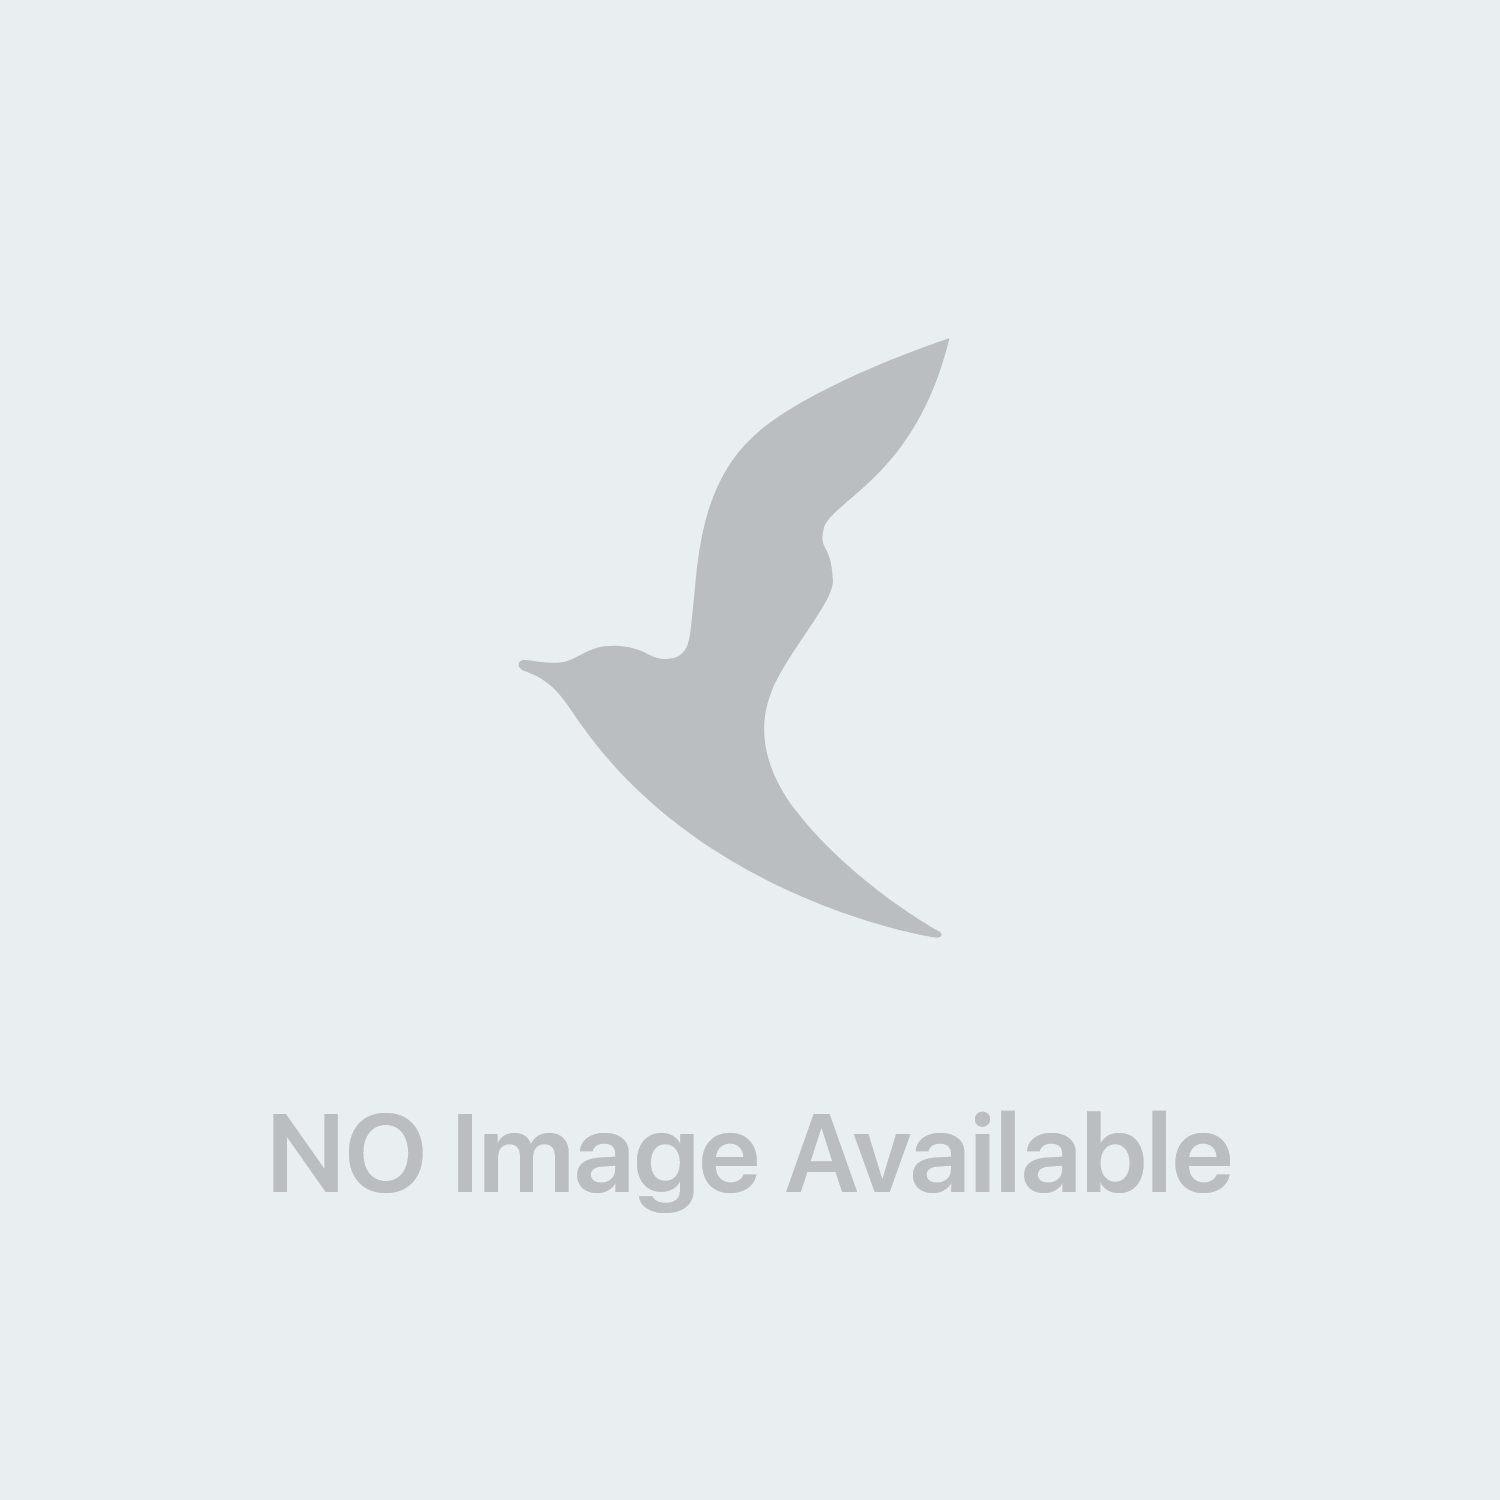 Acutil Fosforo Advance Integratore per Memoria e Concentrazione 50 Compresse